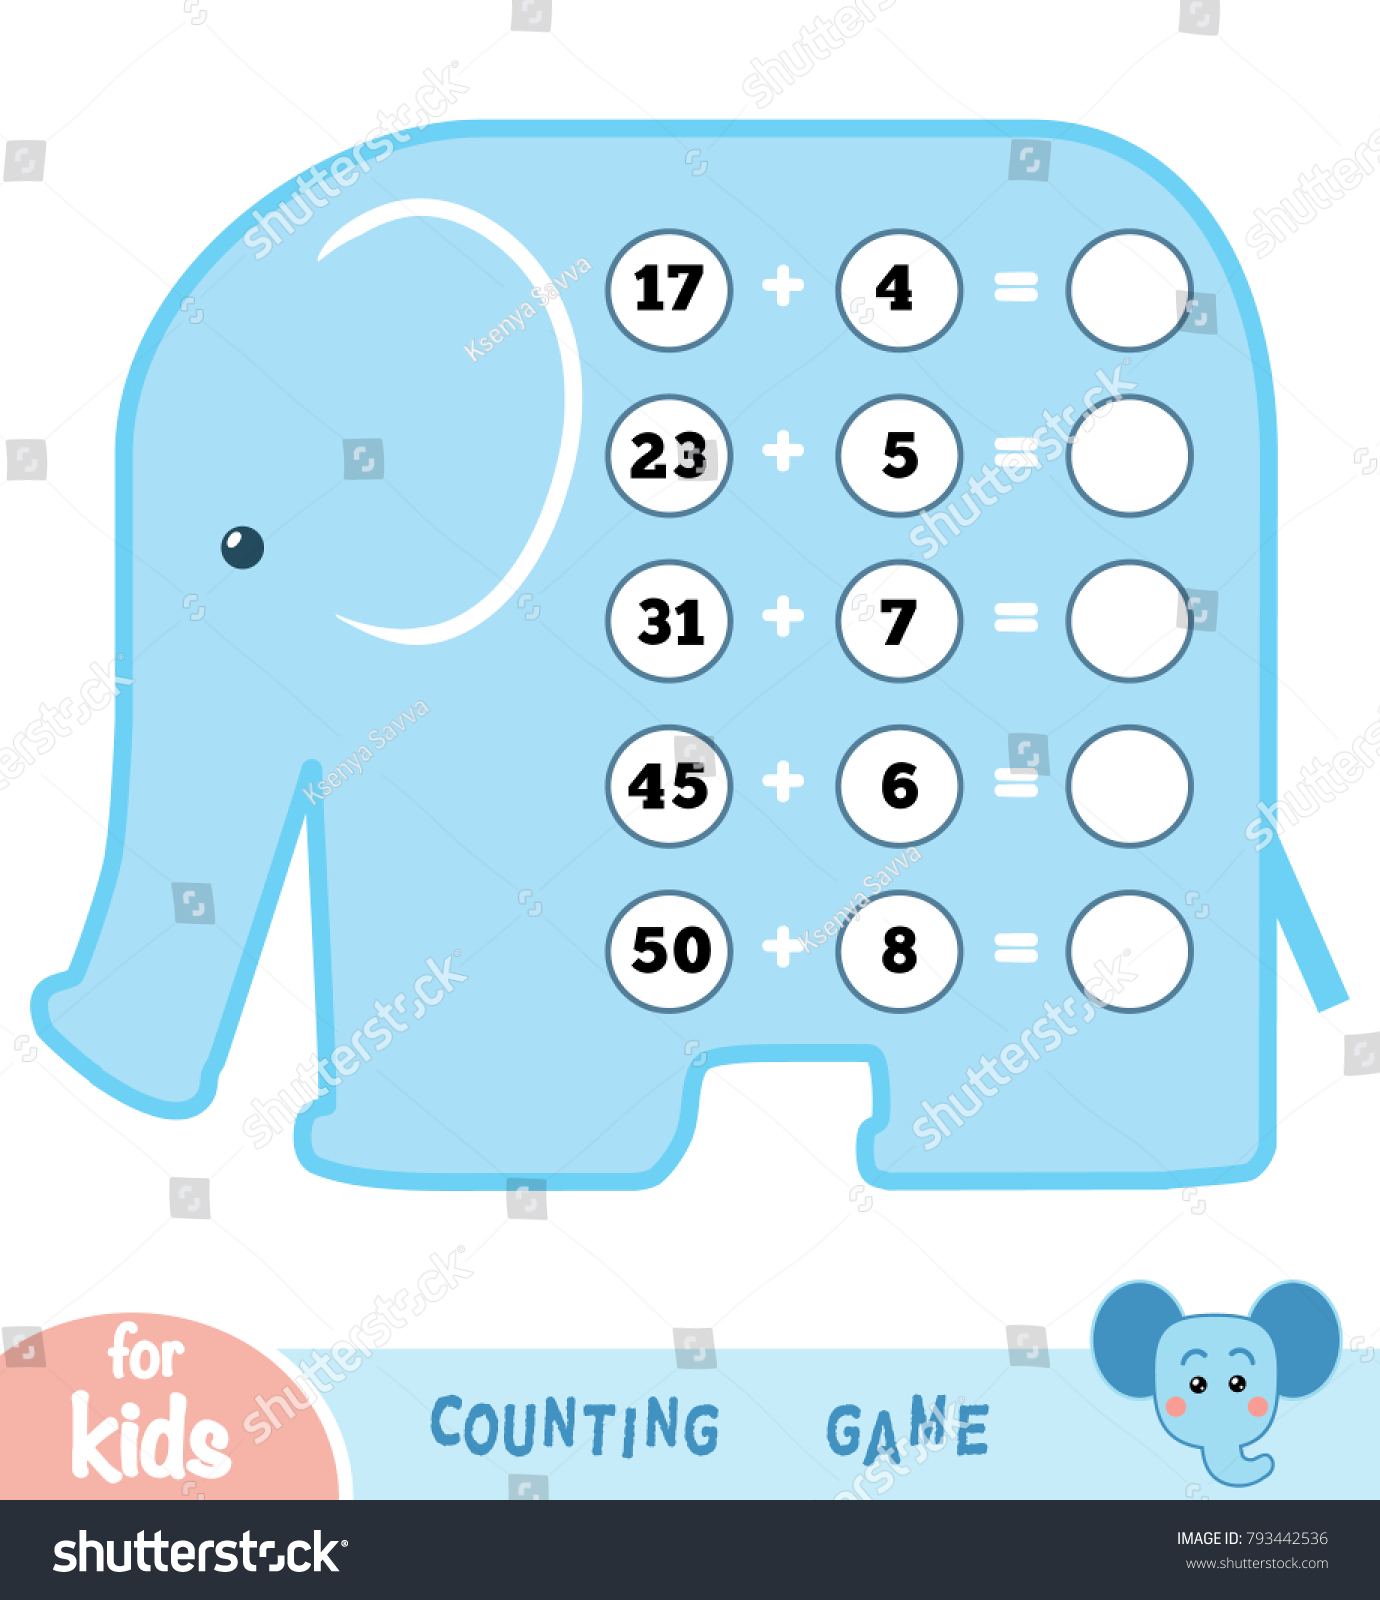 Counting Game Preschool Children Educational Mathematical Stock ...